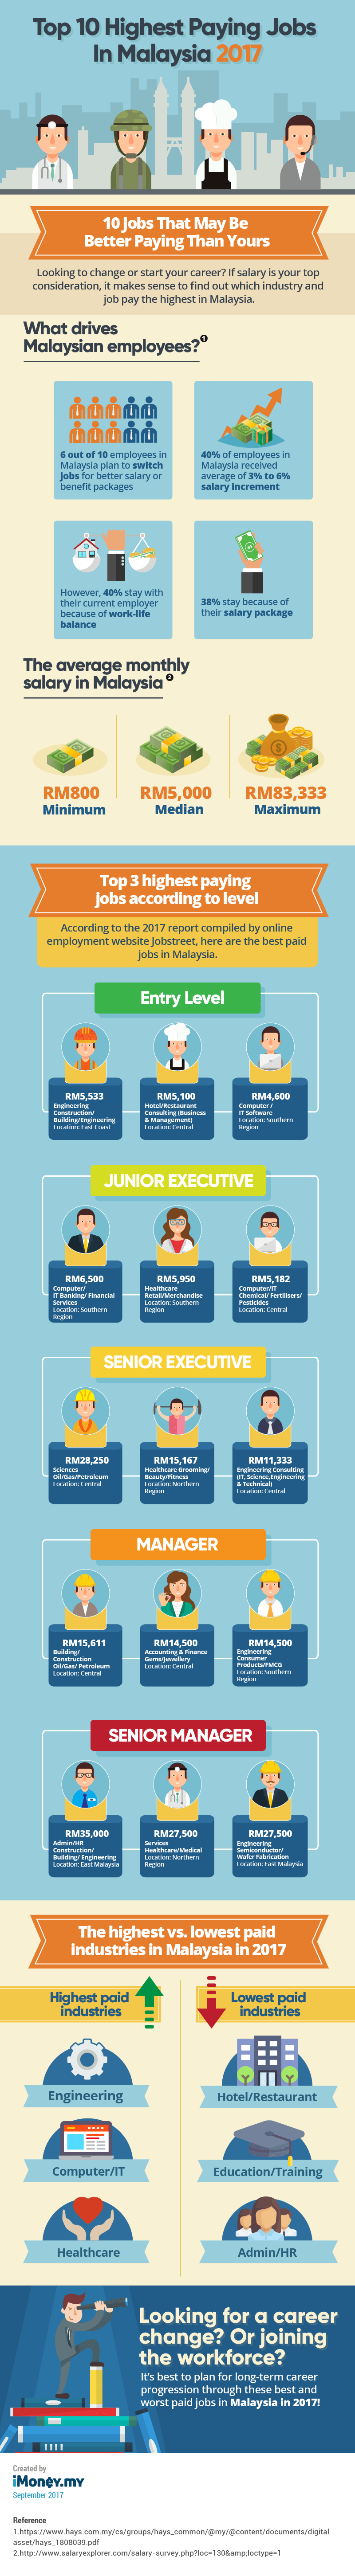 highest paying jobs malaysia 2017